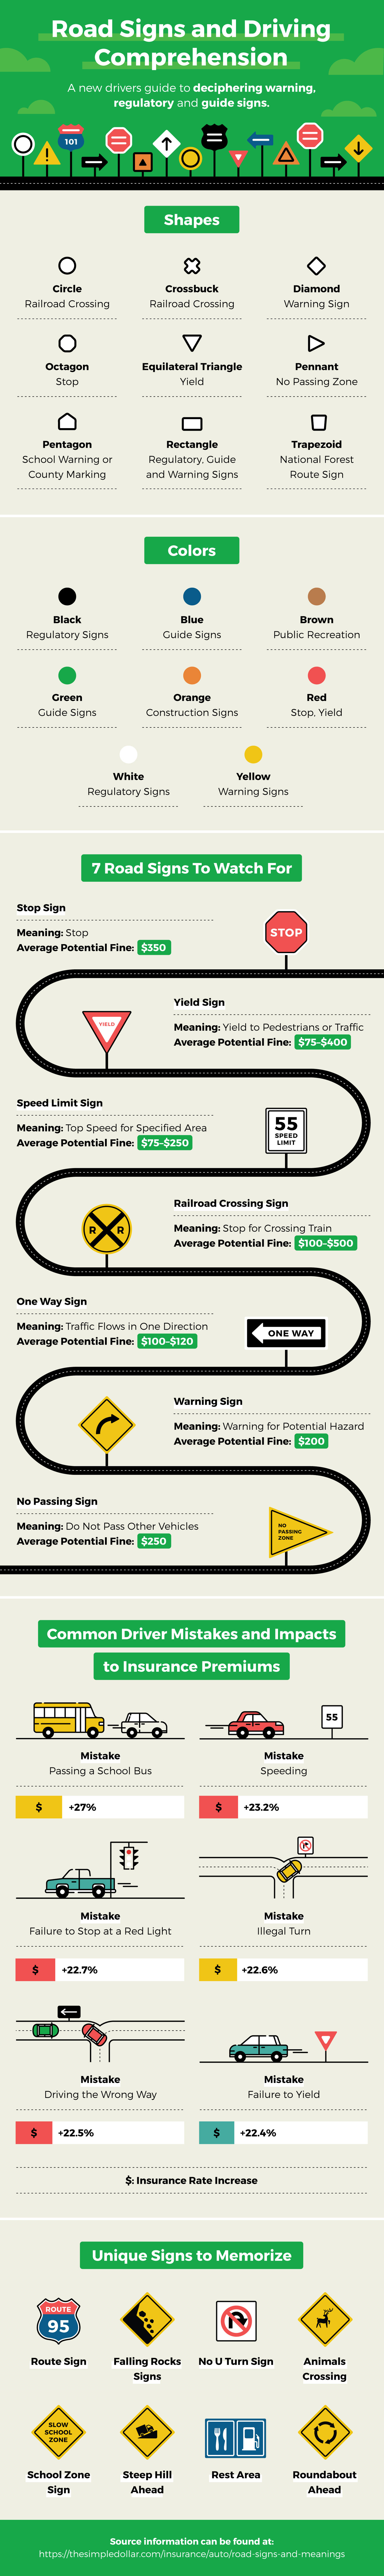 guide to road signs infographic